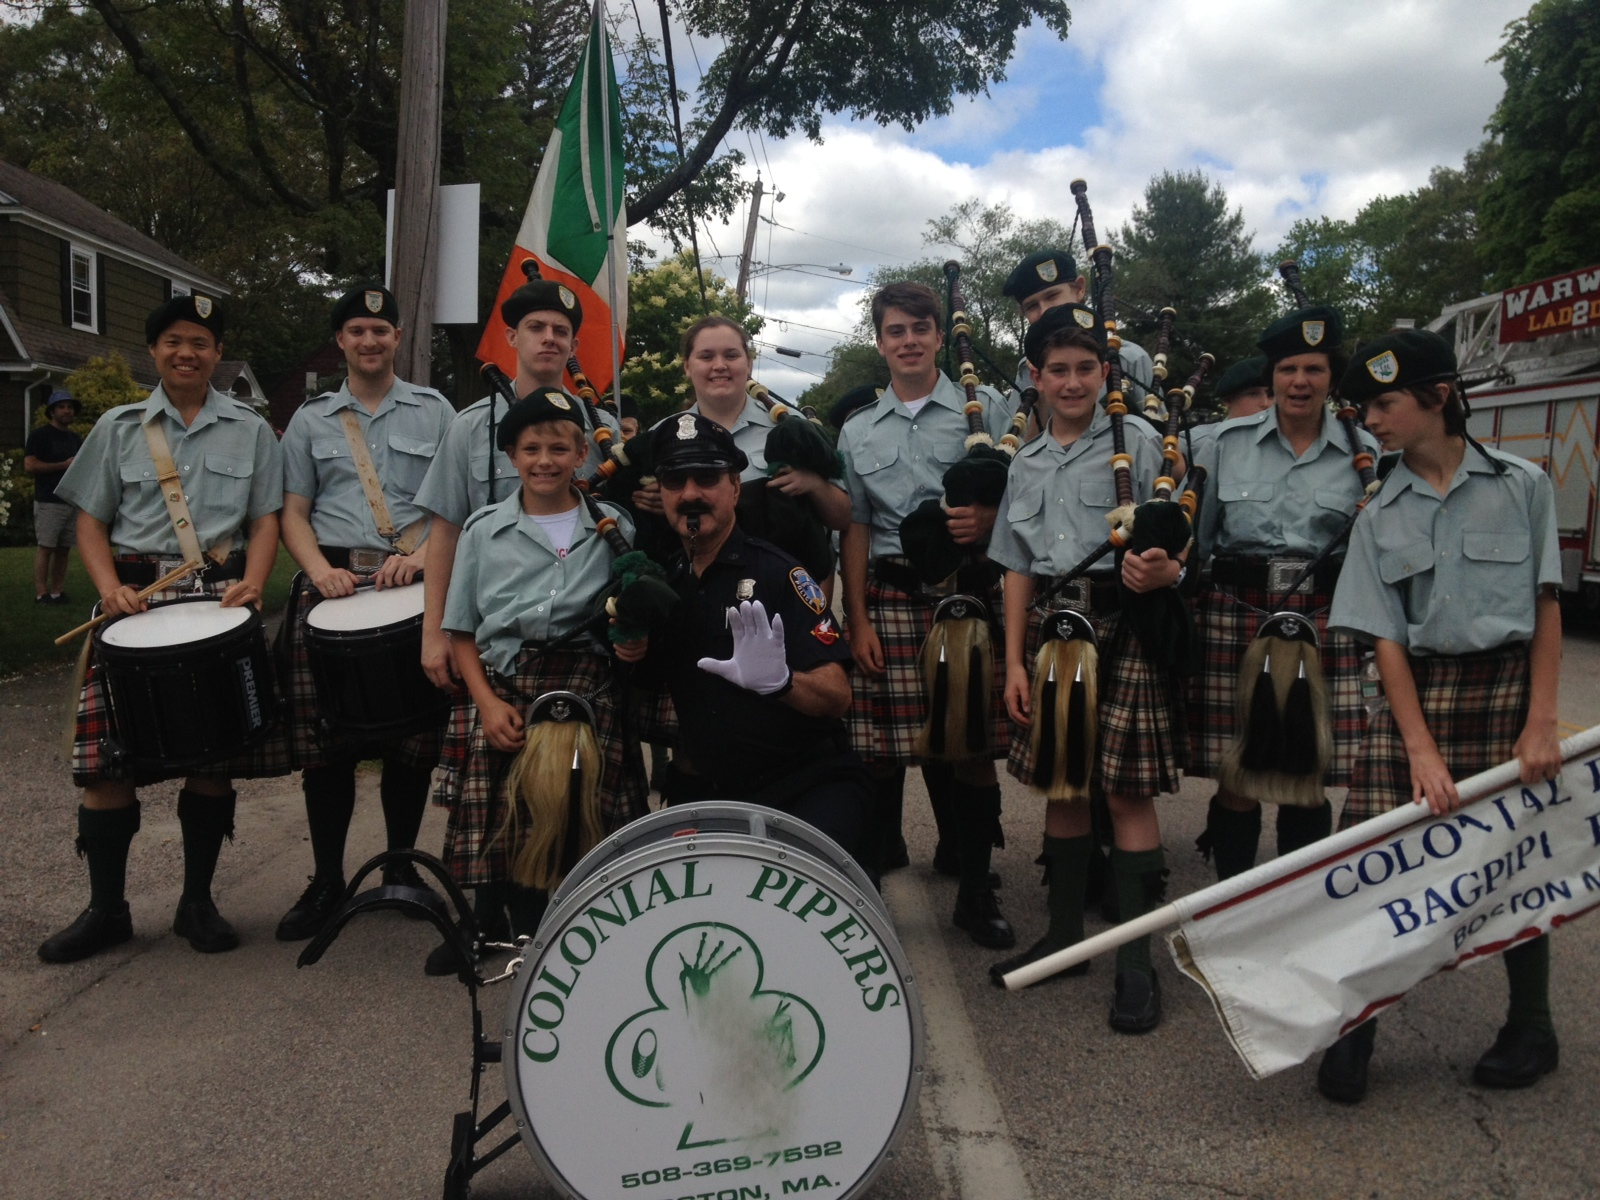 Who says Pipers don't have fun!?